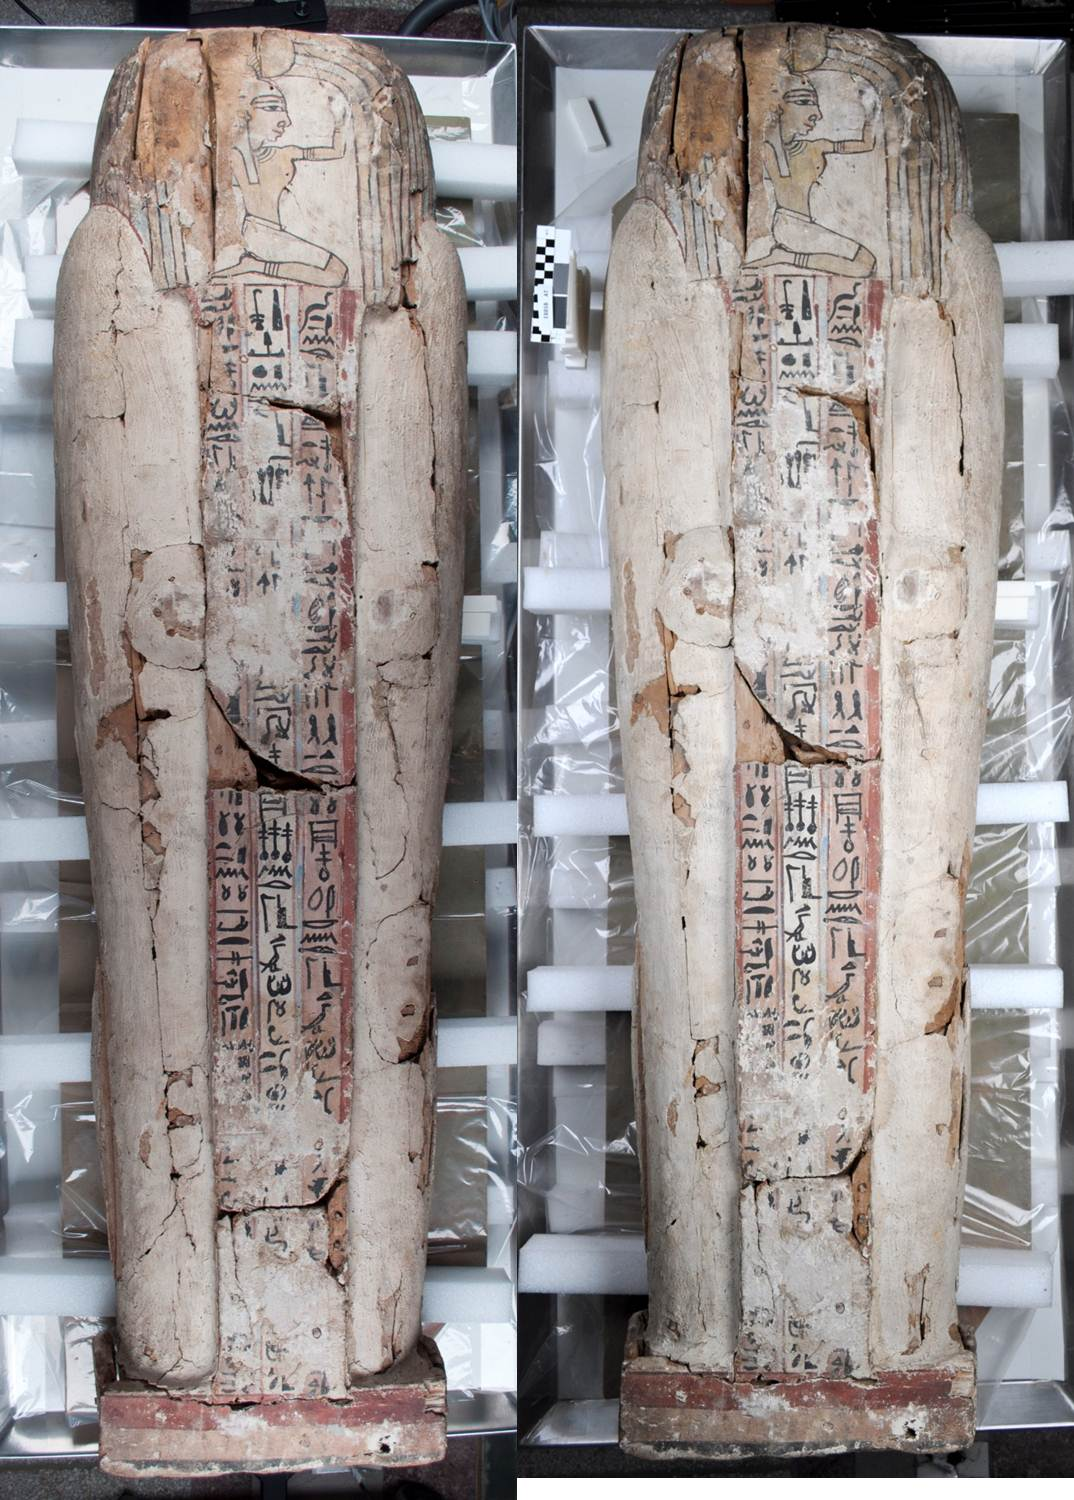 The coffin base before (left) and after (right) conservation treatment.